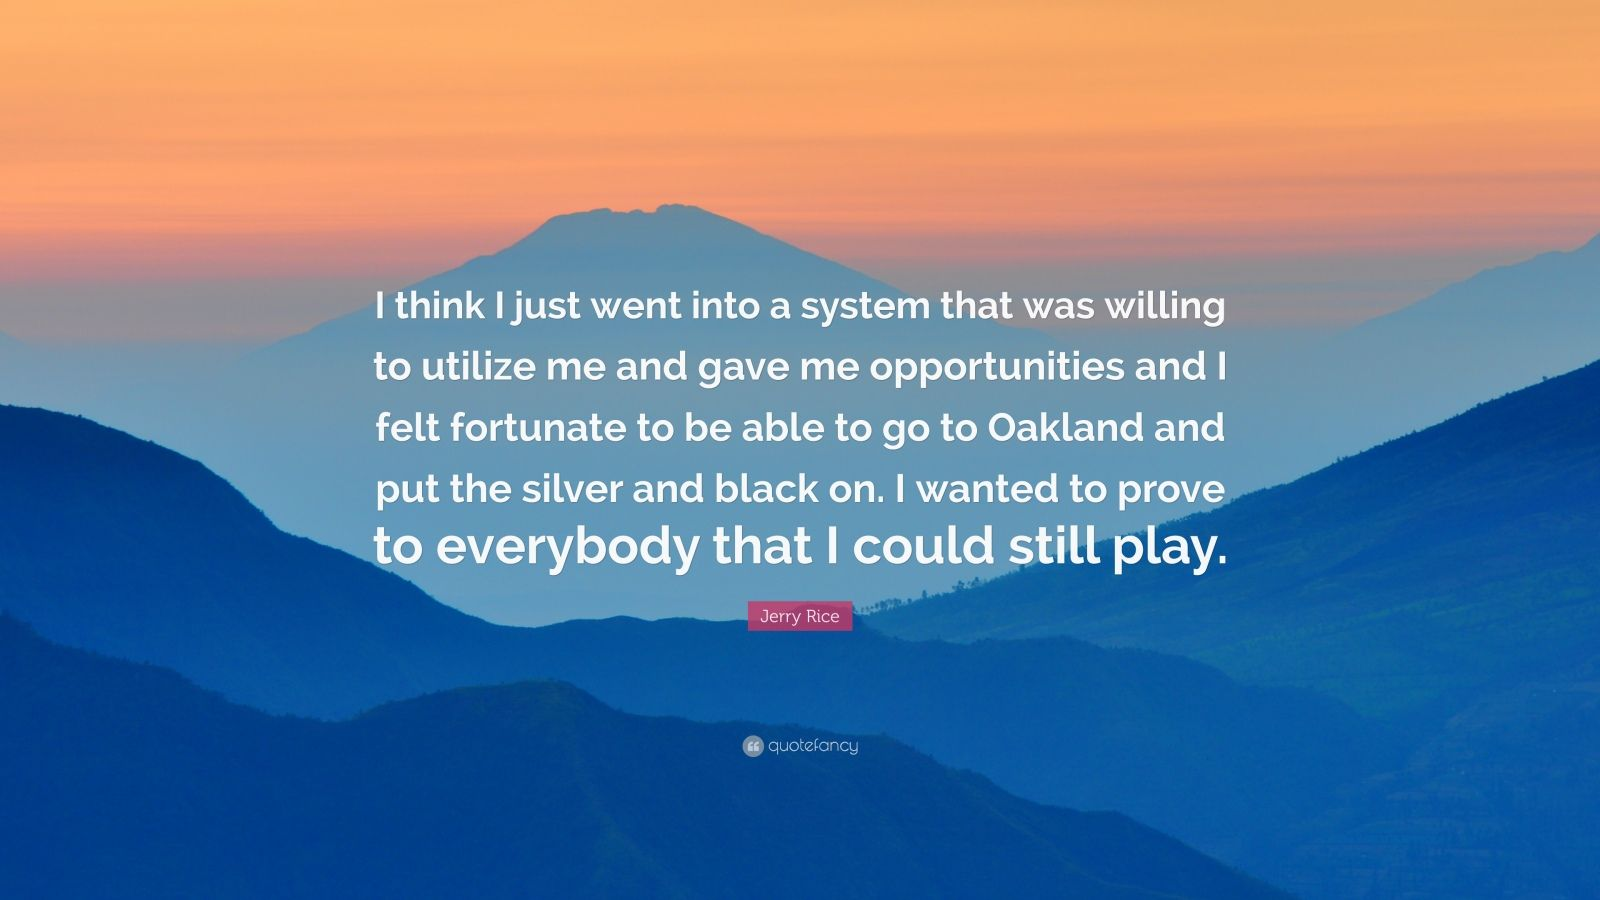 """Jerry Rice Quote: """"I think I just went into a system that was willing to utilize me and gave me opportunities and I felt fortunate to be able to go to Oakland and put the silver and black on. I wanted to prove to everybody that I could still play."""""""